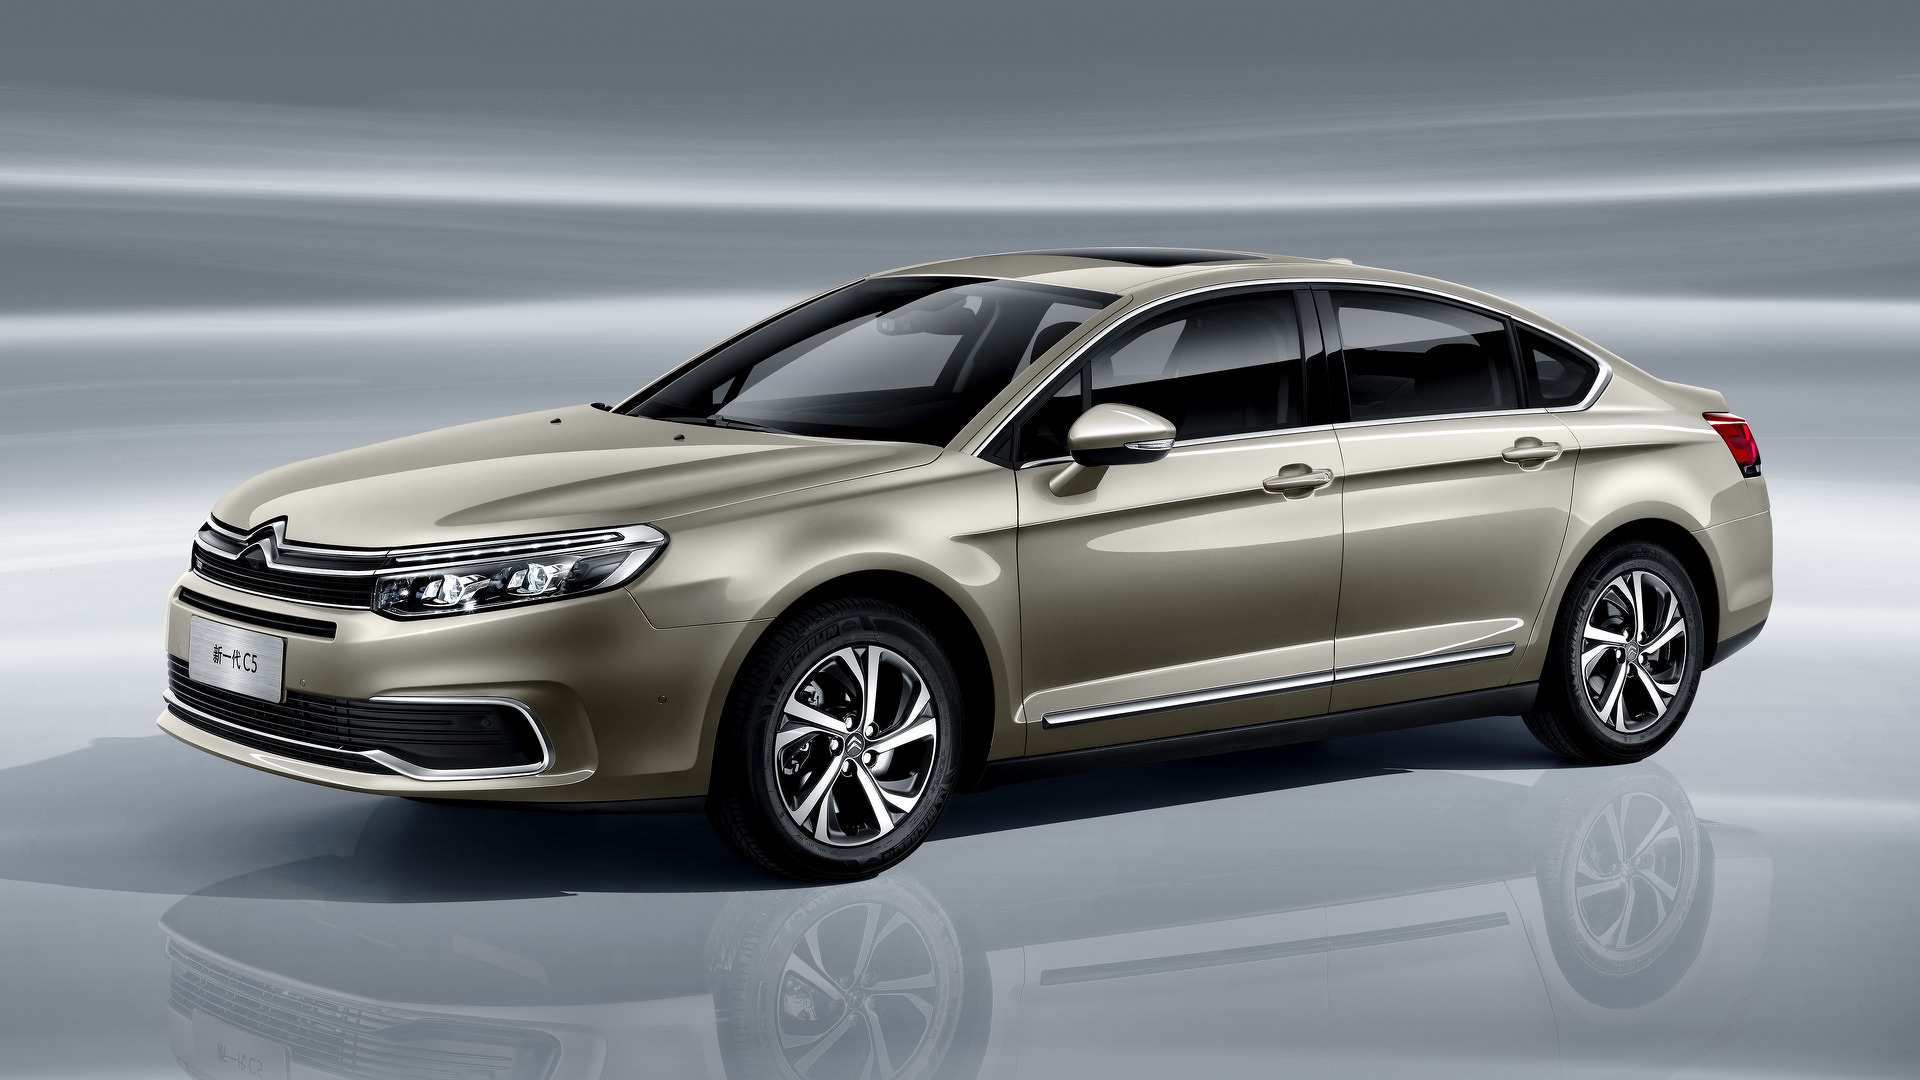 77 New Citroen Ds5 2020 Photos